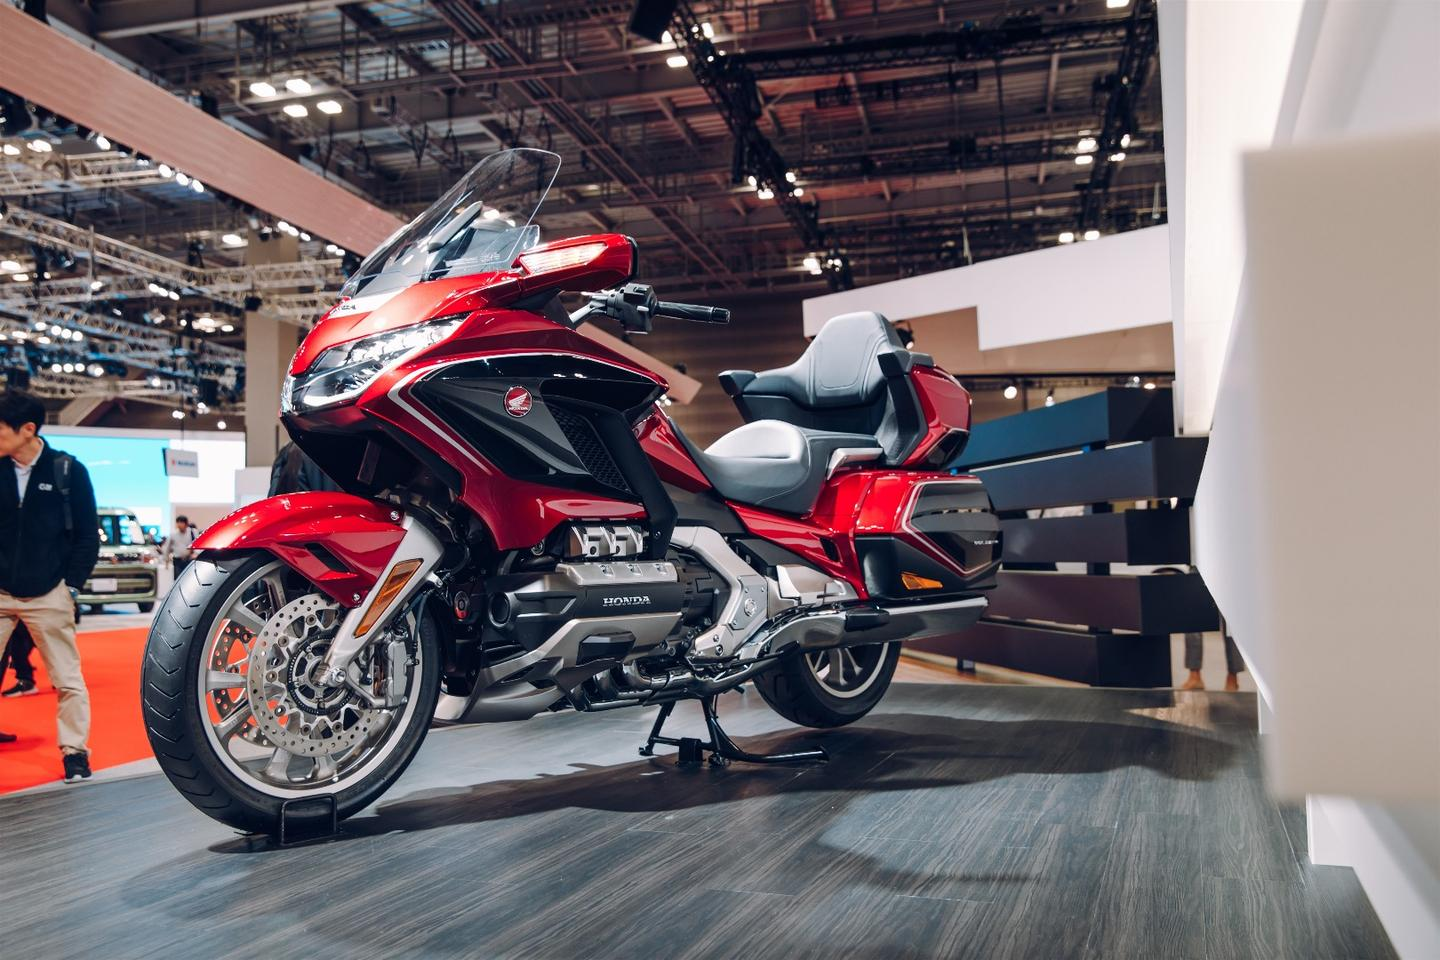 Honda unveiled the2018 GL1800 Goldwing on the opening day ofthe 45th Tokyo Motor Show